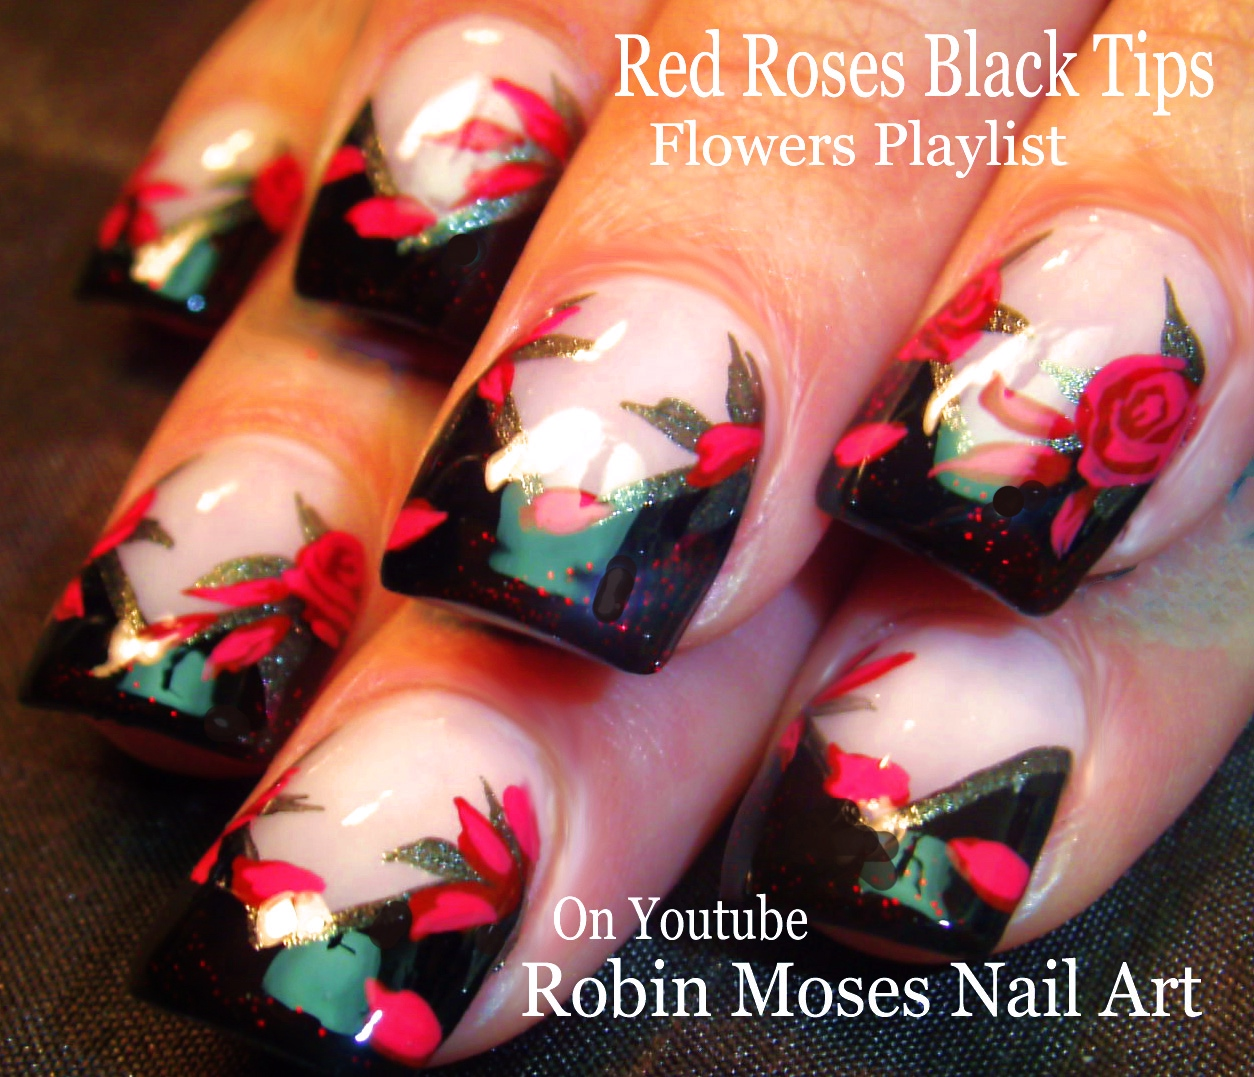 Robin Moses Nail Art: Winter Roses